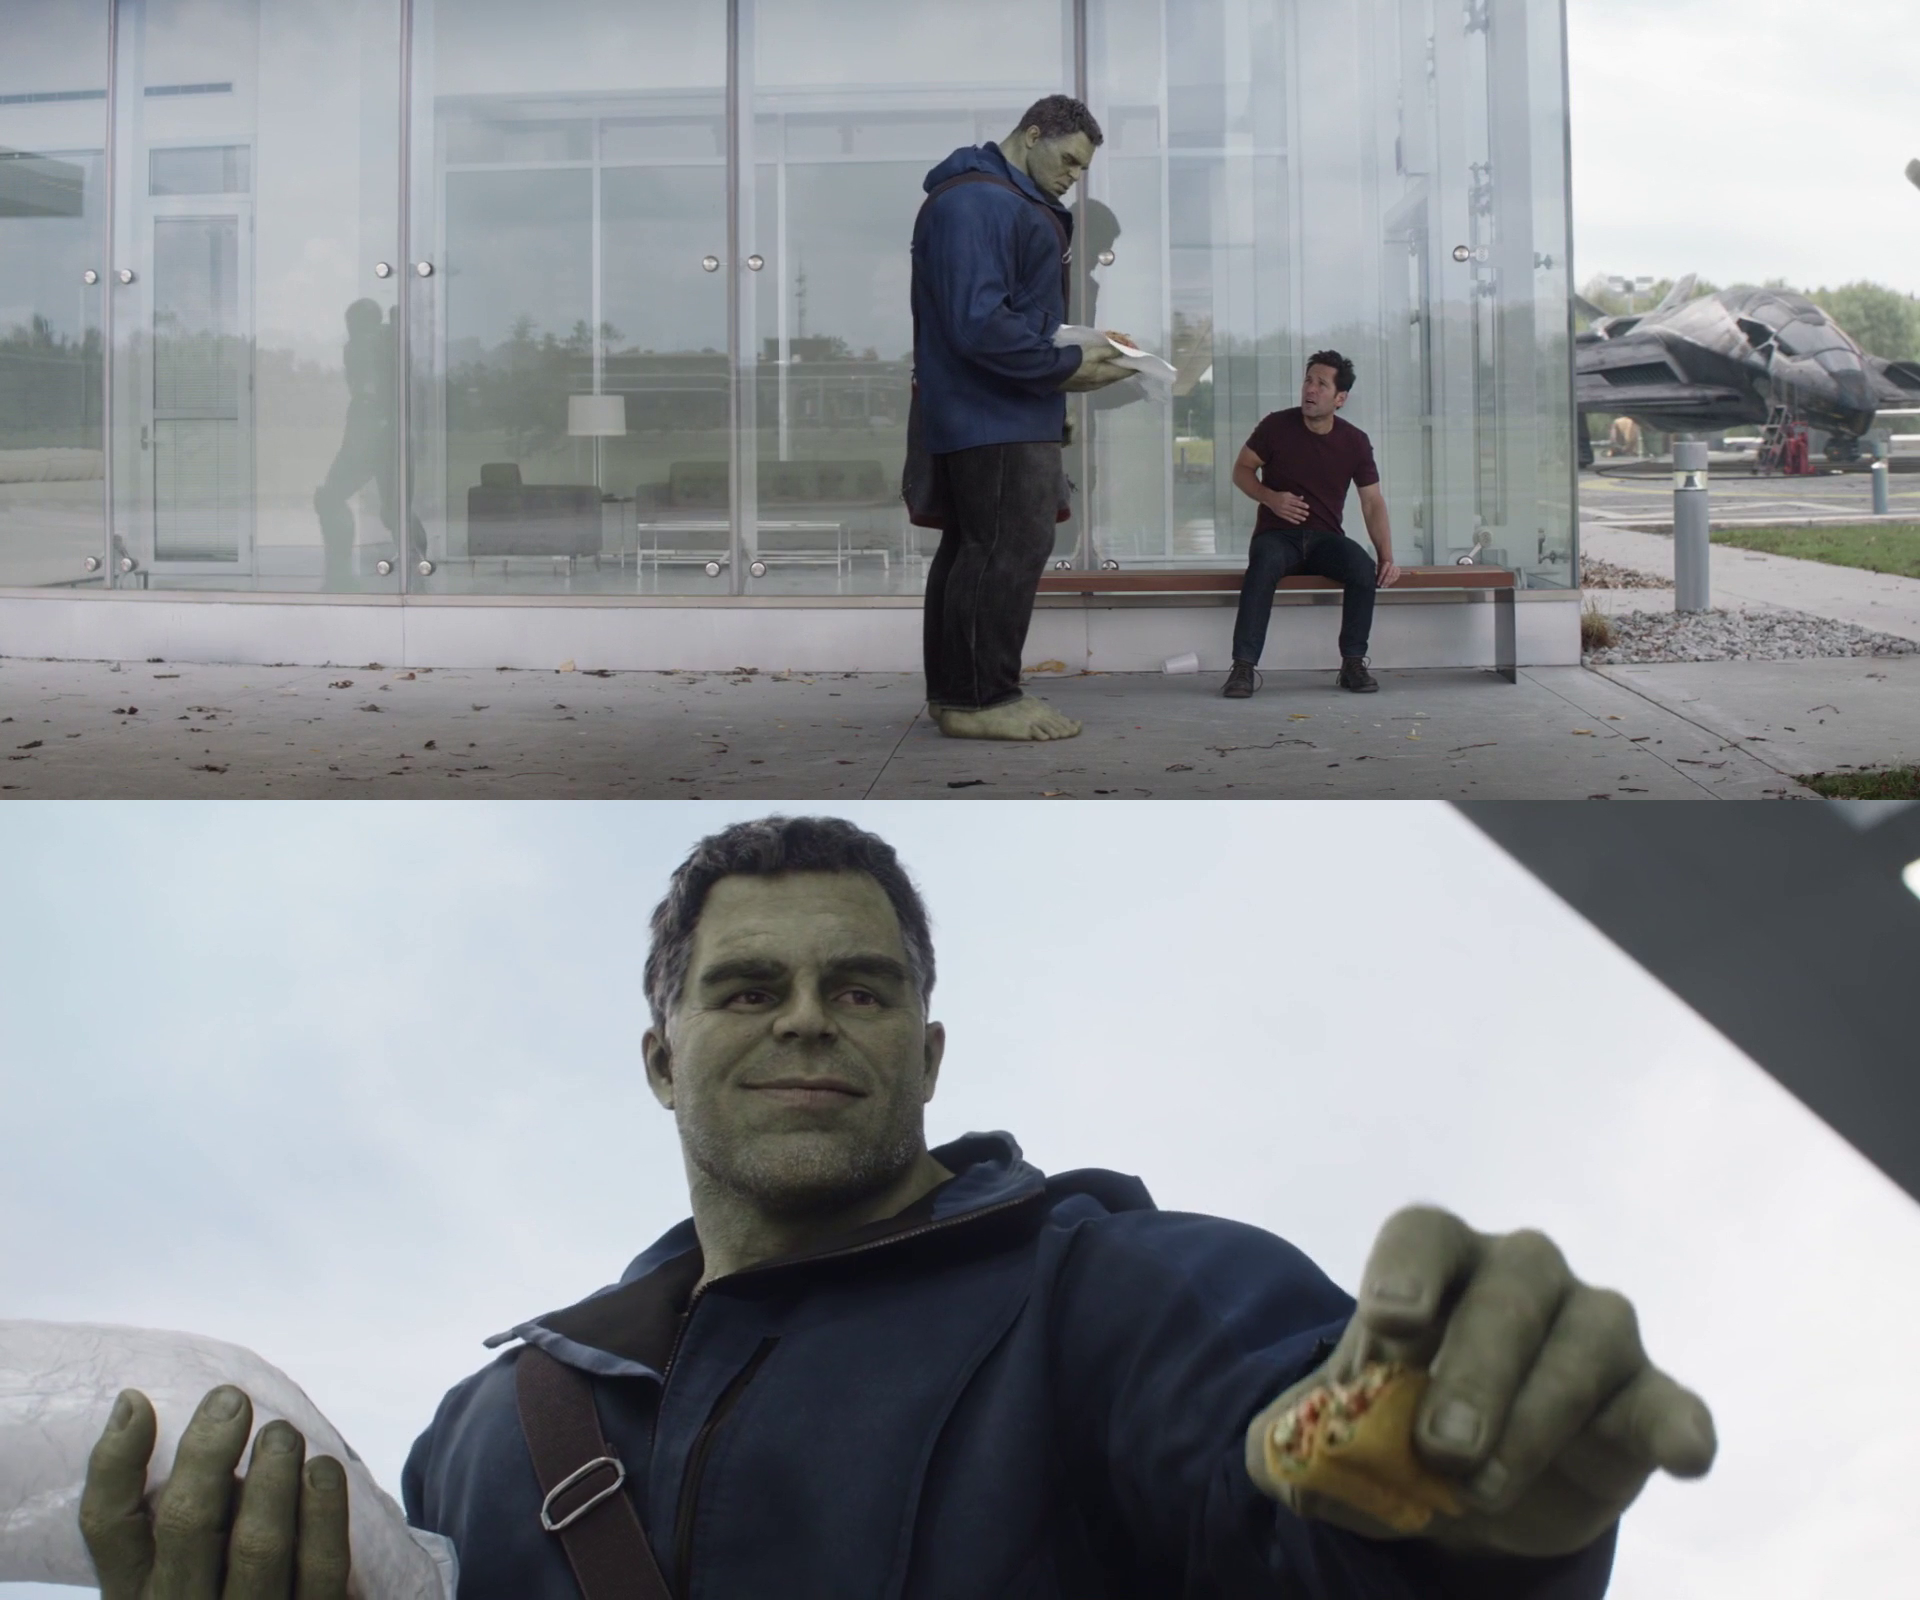 The Hd Endgame Meme Templates Are Here For All Your Shieldposting Needs Meme Template Image Memes Meme Pictures